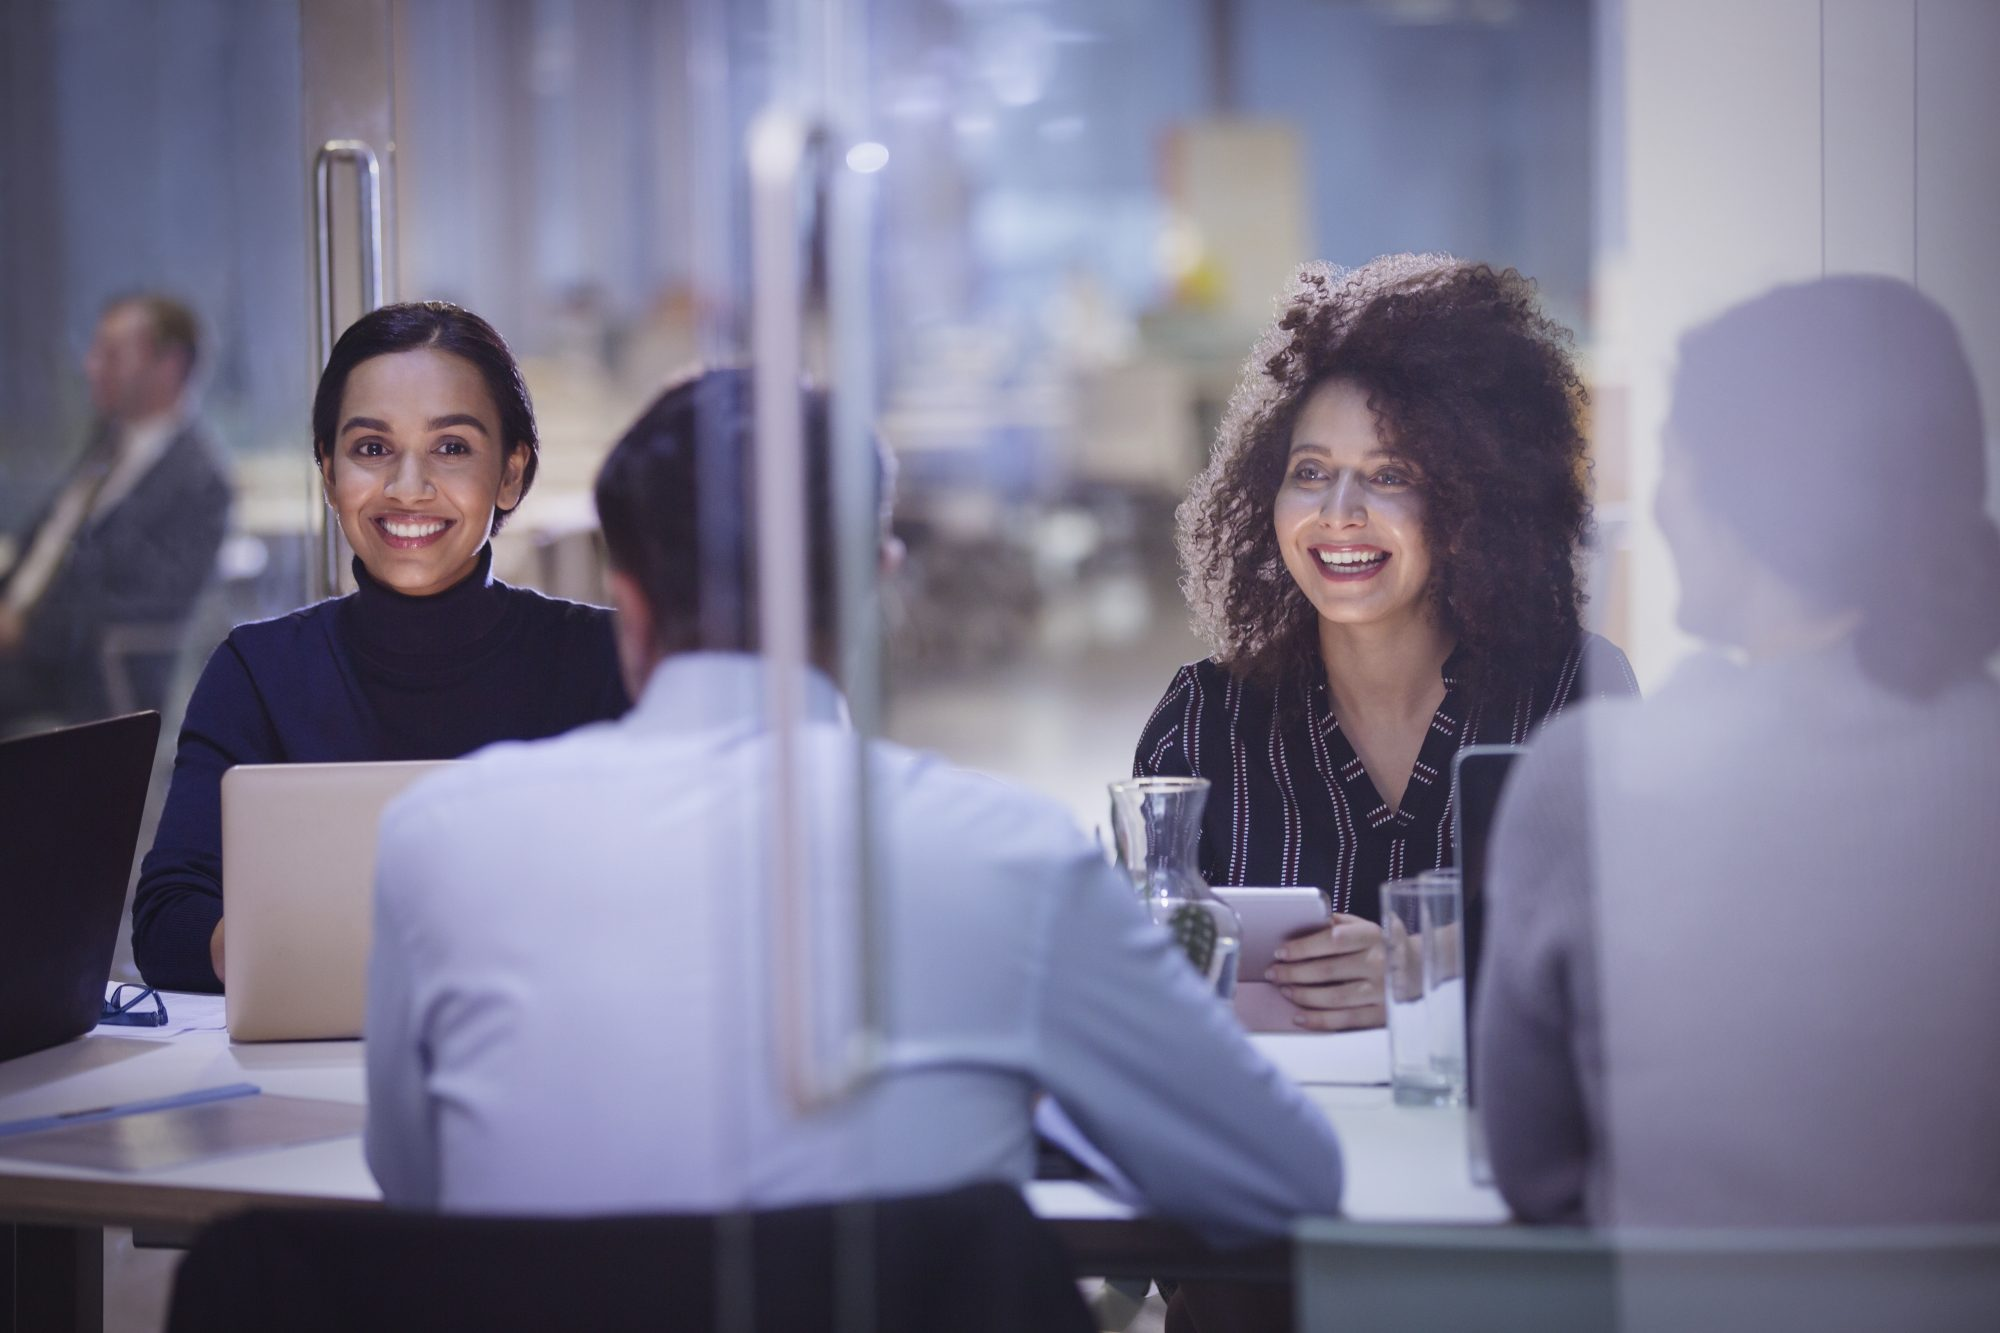 Businesswomen smiling in conference room meeting